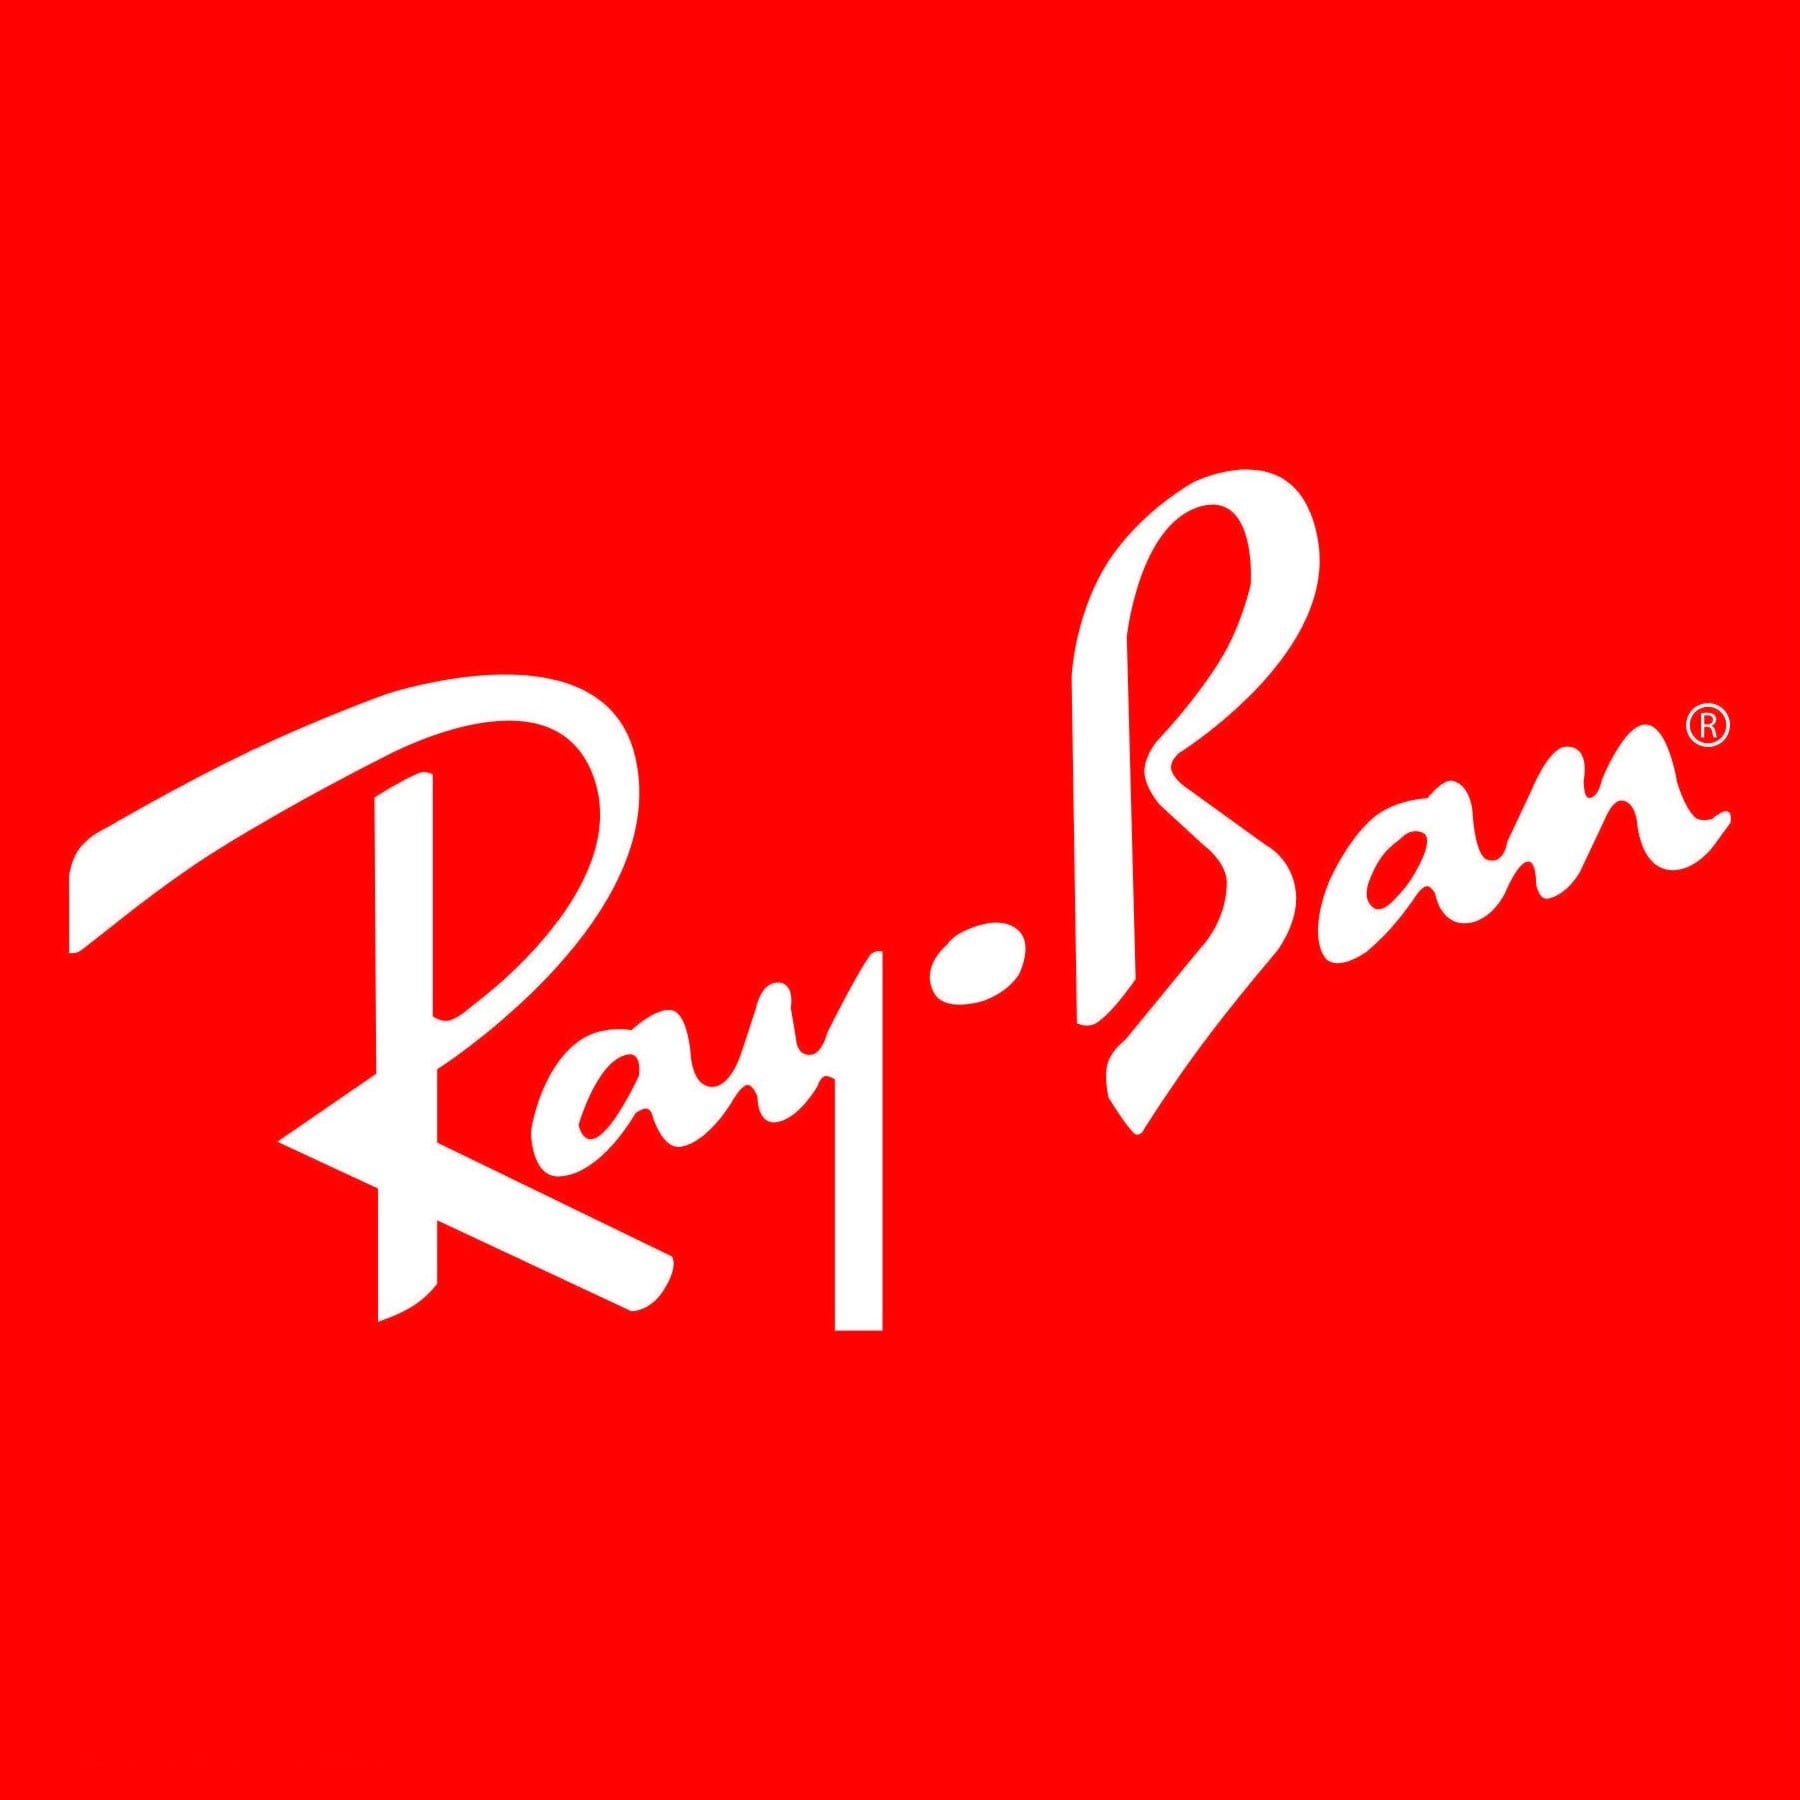 Shop all different styles of Erika sunglasses from €109 @ Official Ray-Ban.com + Free Shipping